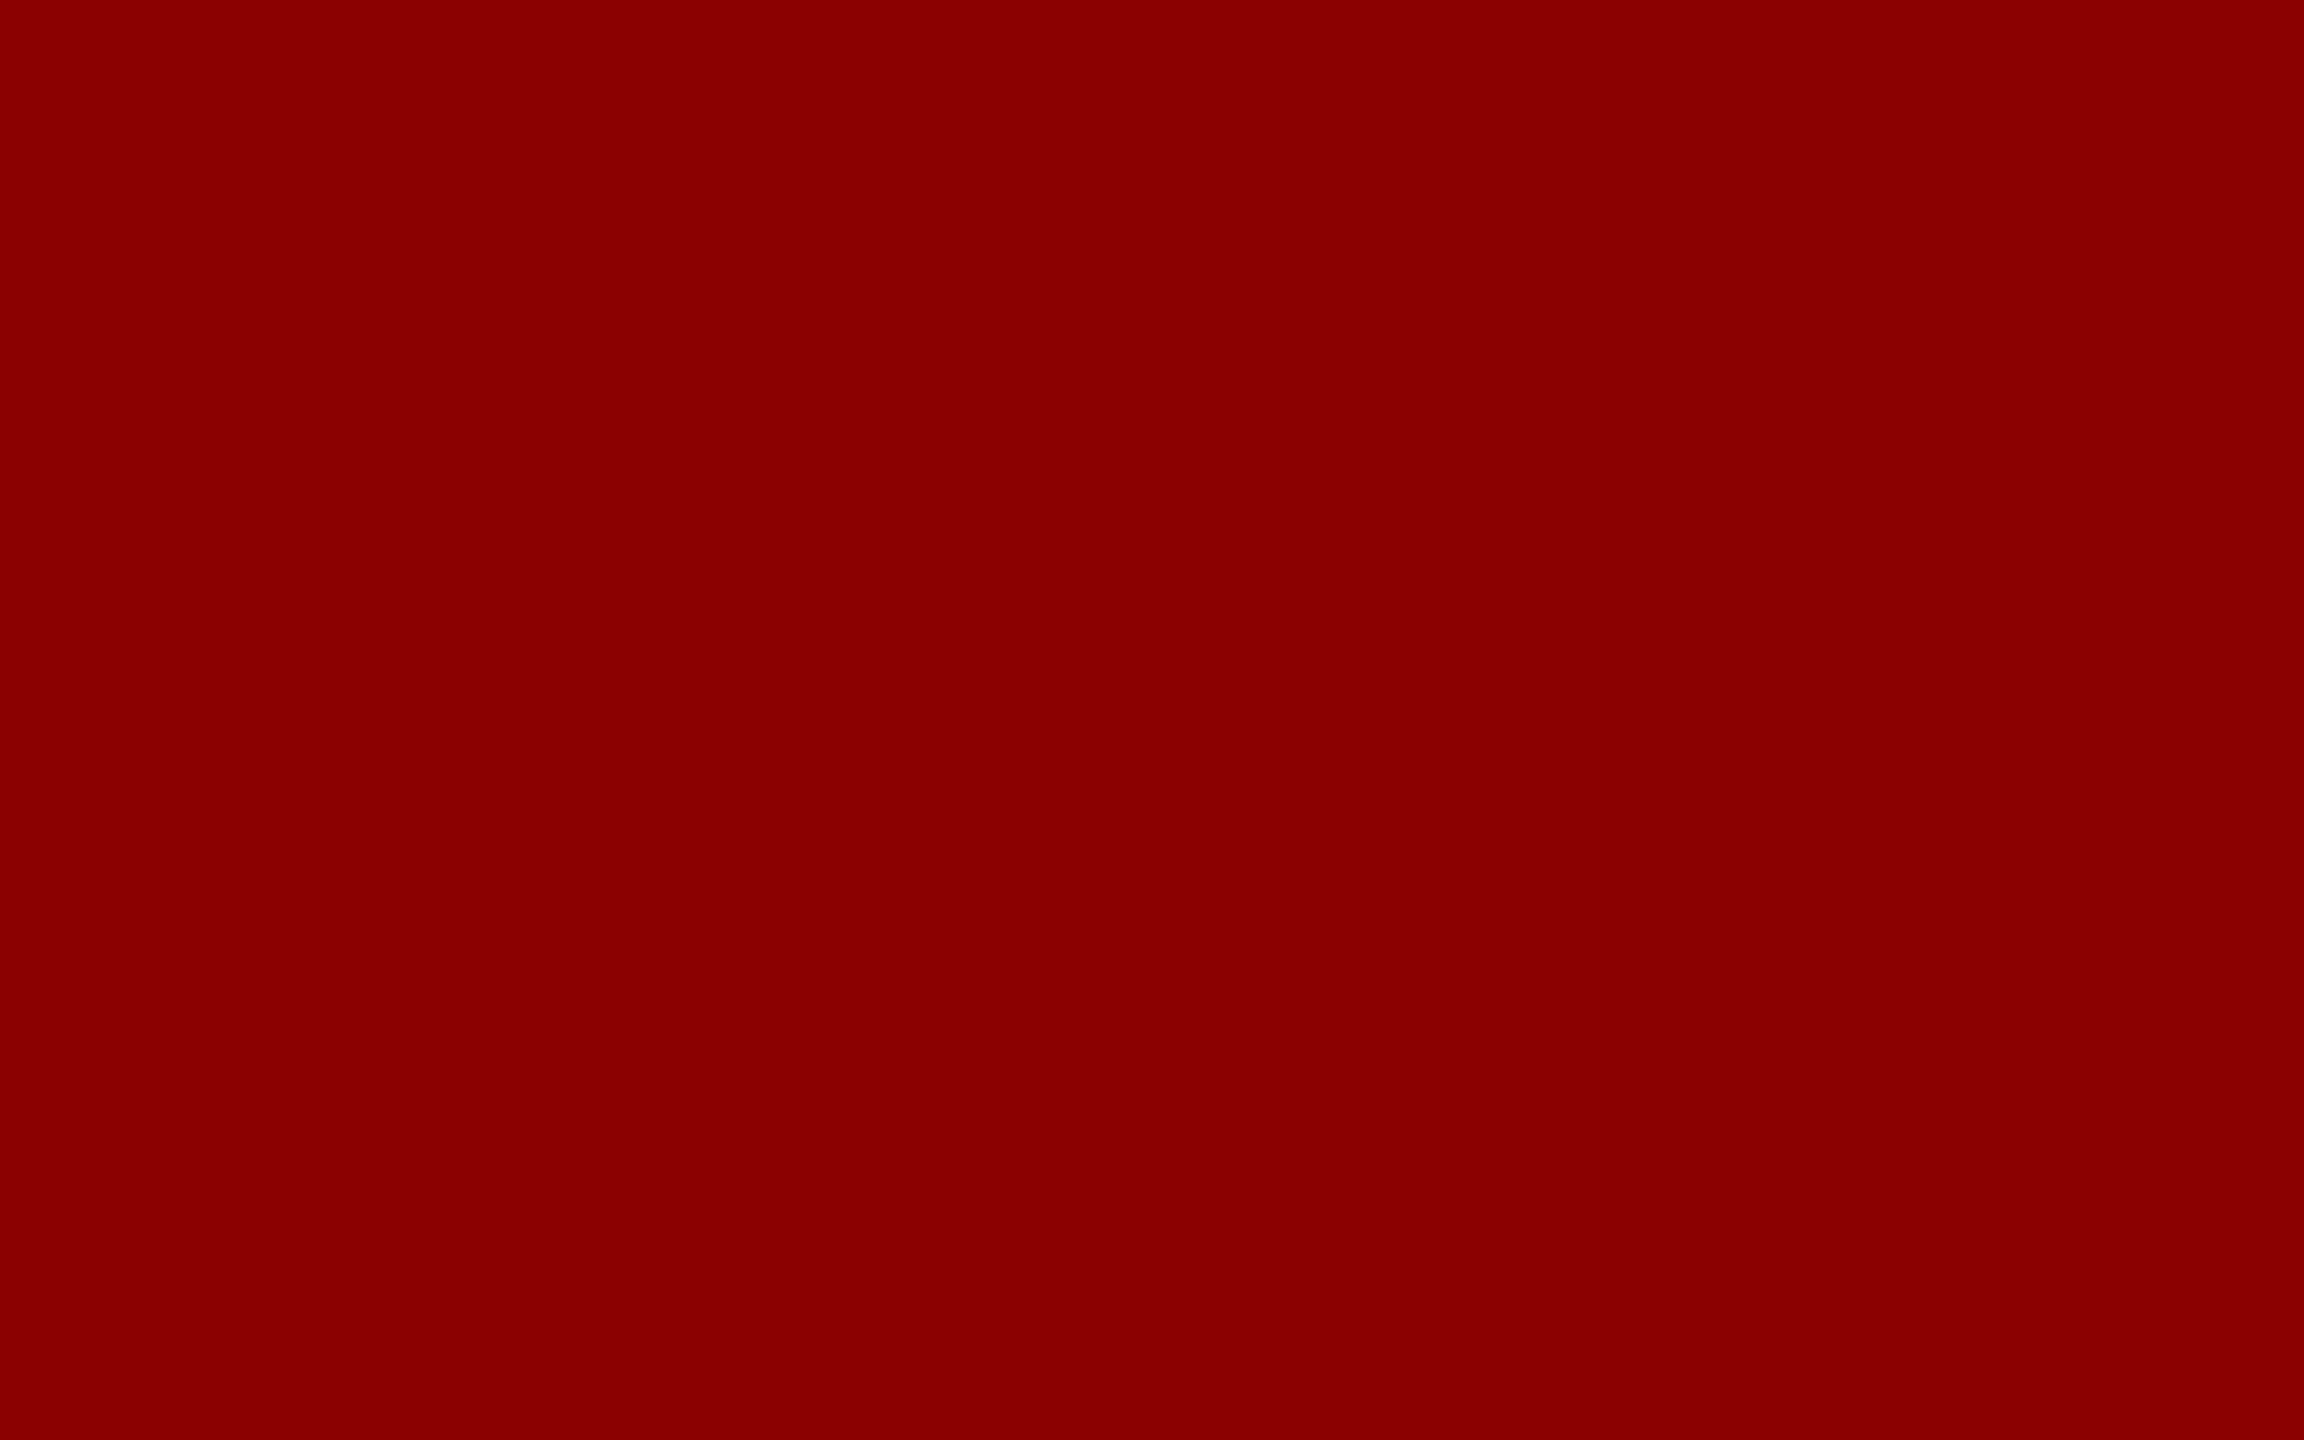 2304x1440 Dark Red Solid Color Background